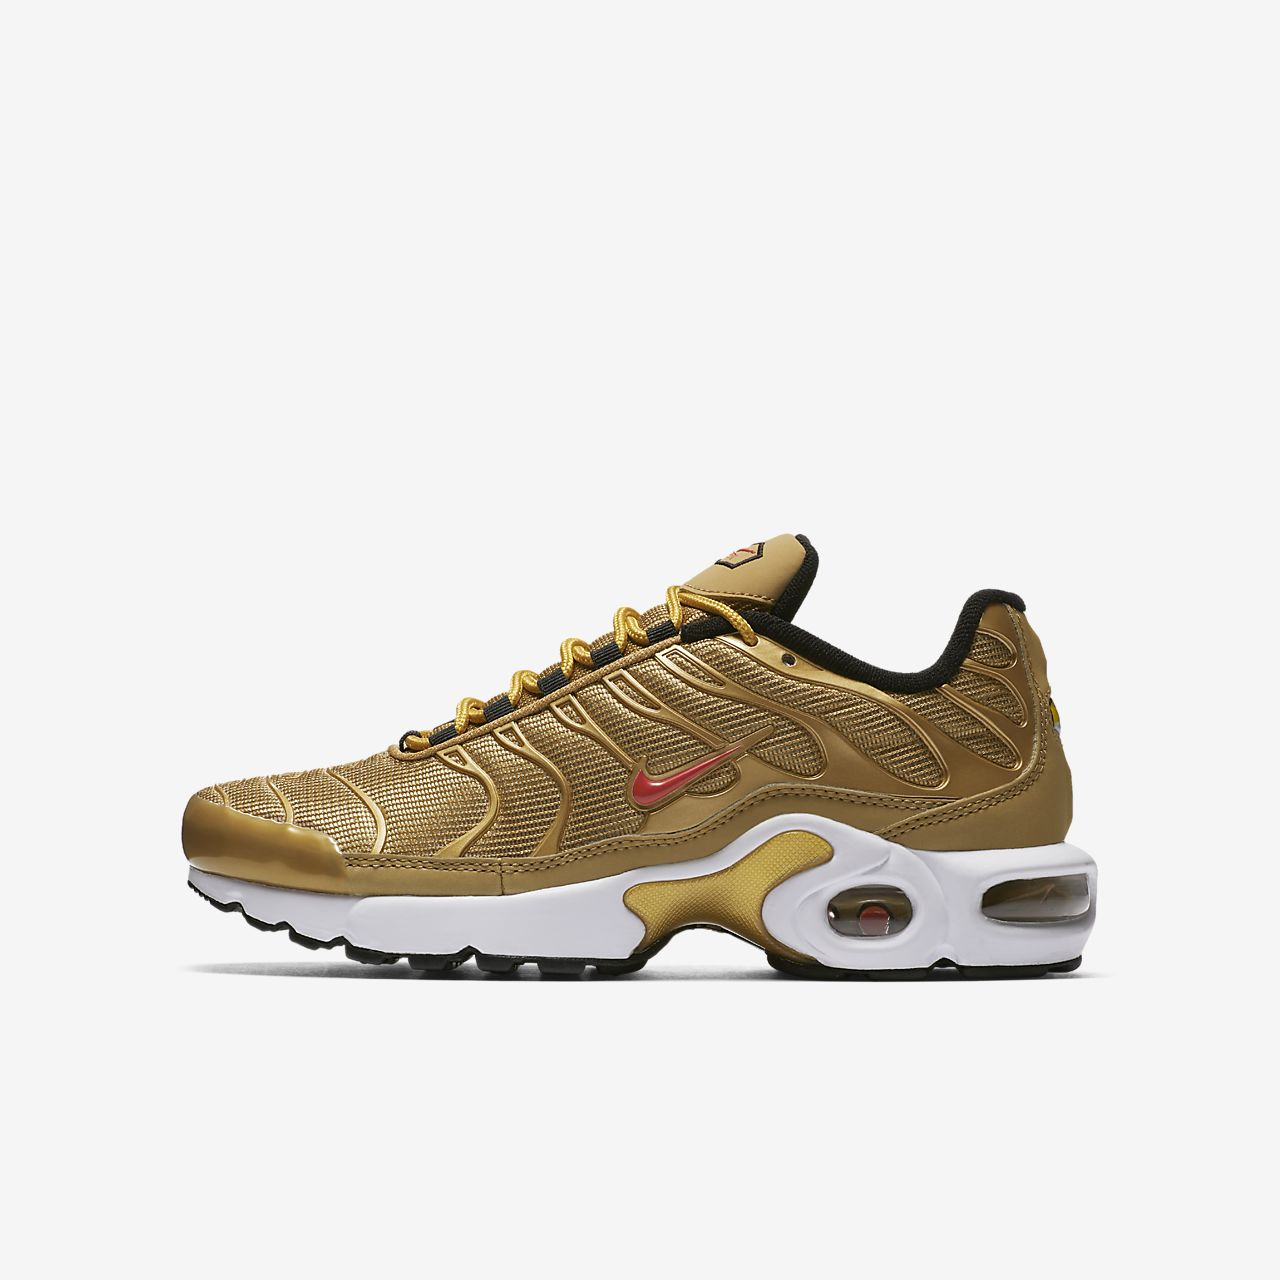 official photos c5a1c cde66 sale nike air max plus tn se schuh für ältere kinder cbb12 644bd